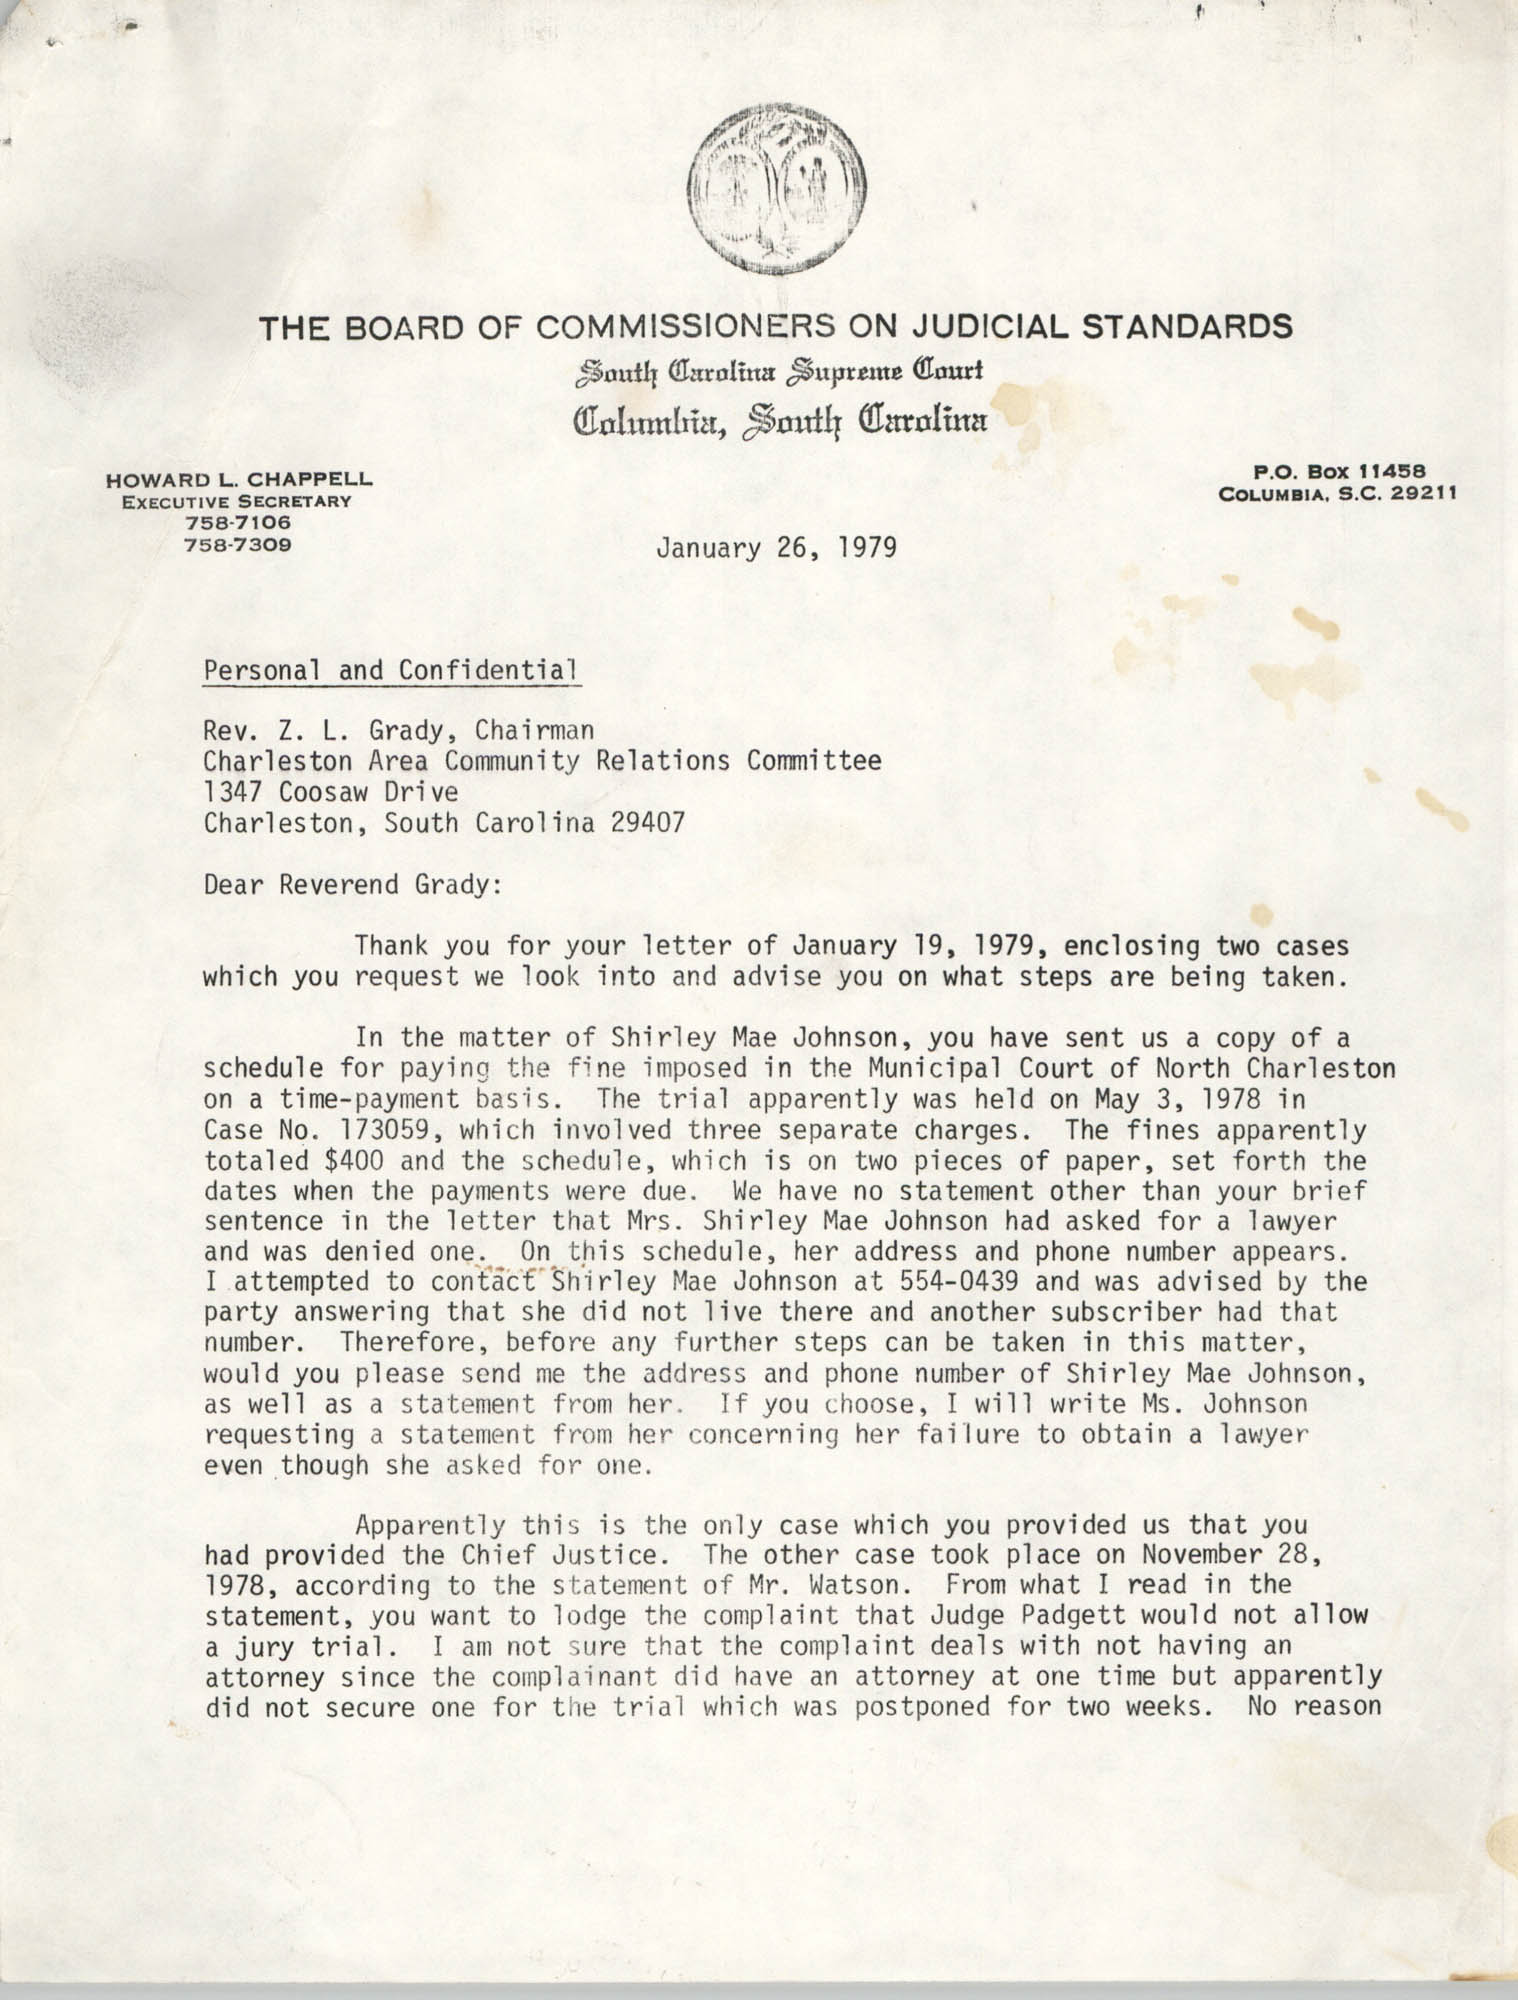 Letter from Howard L. Chappell to Z. L. Grady, January 26, 1979